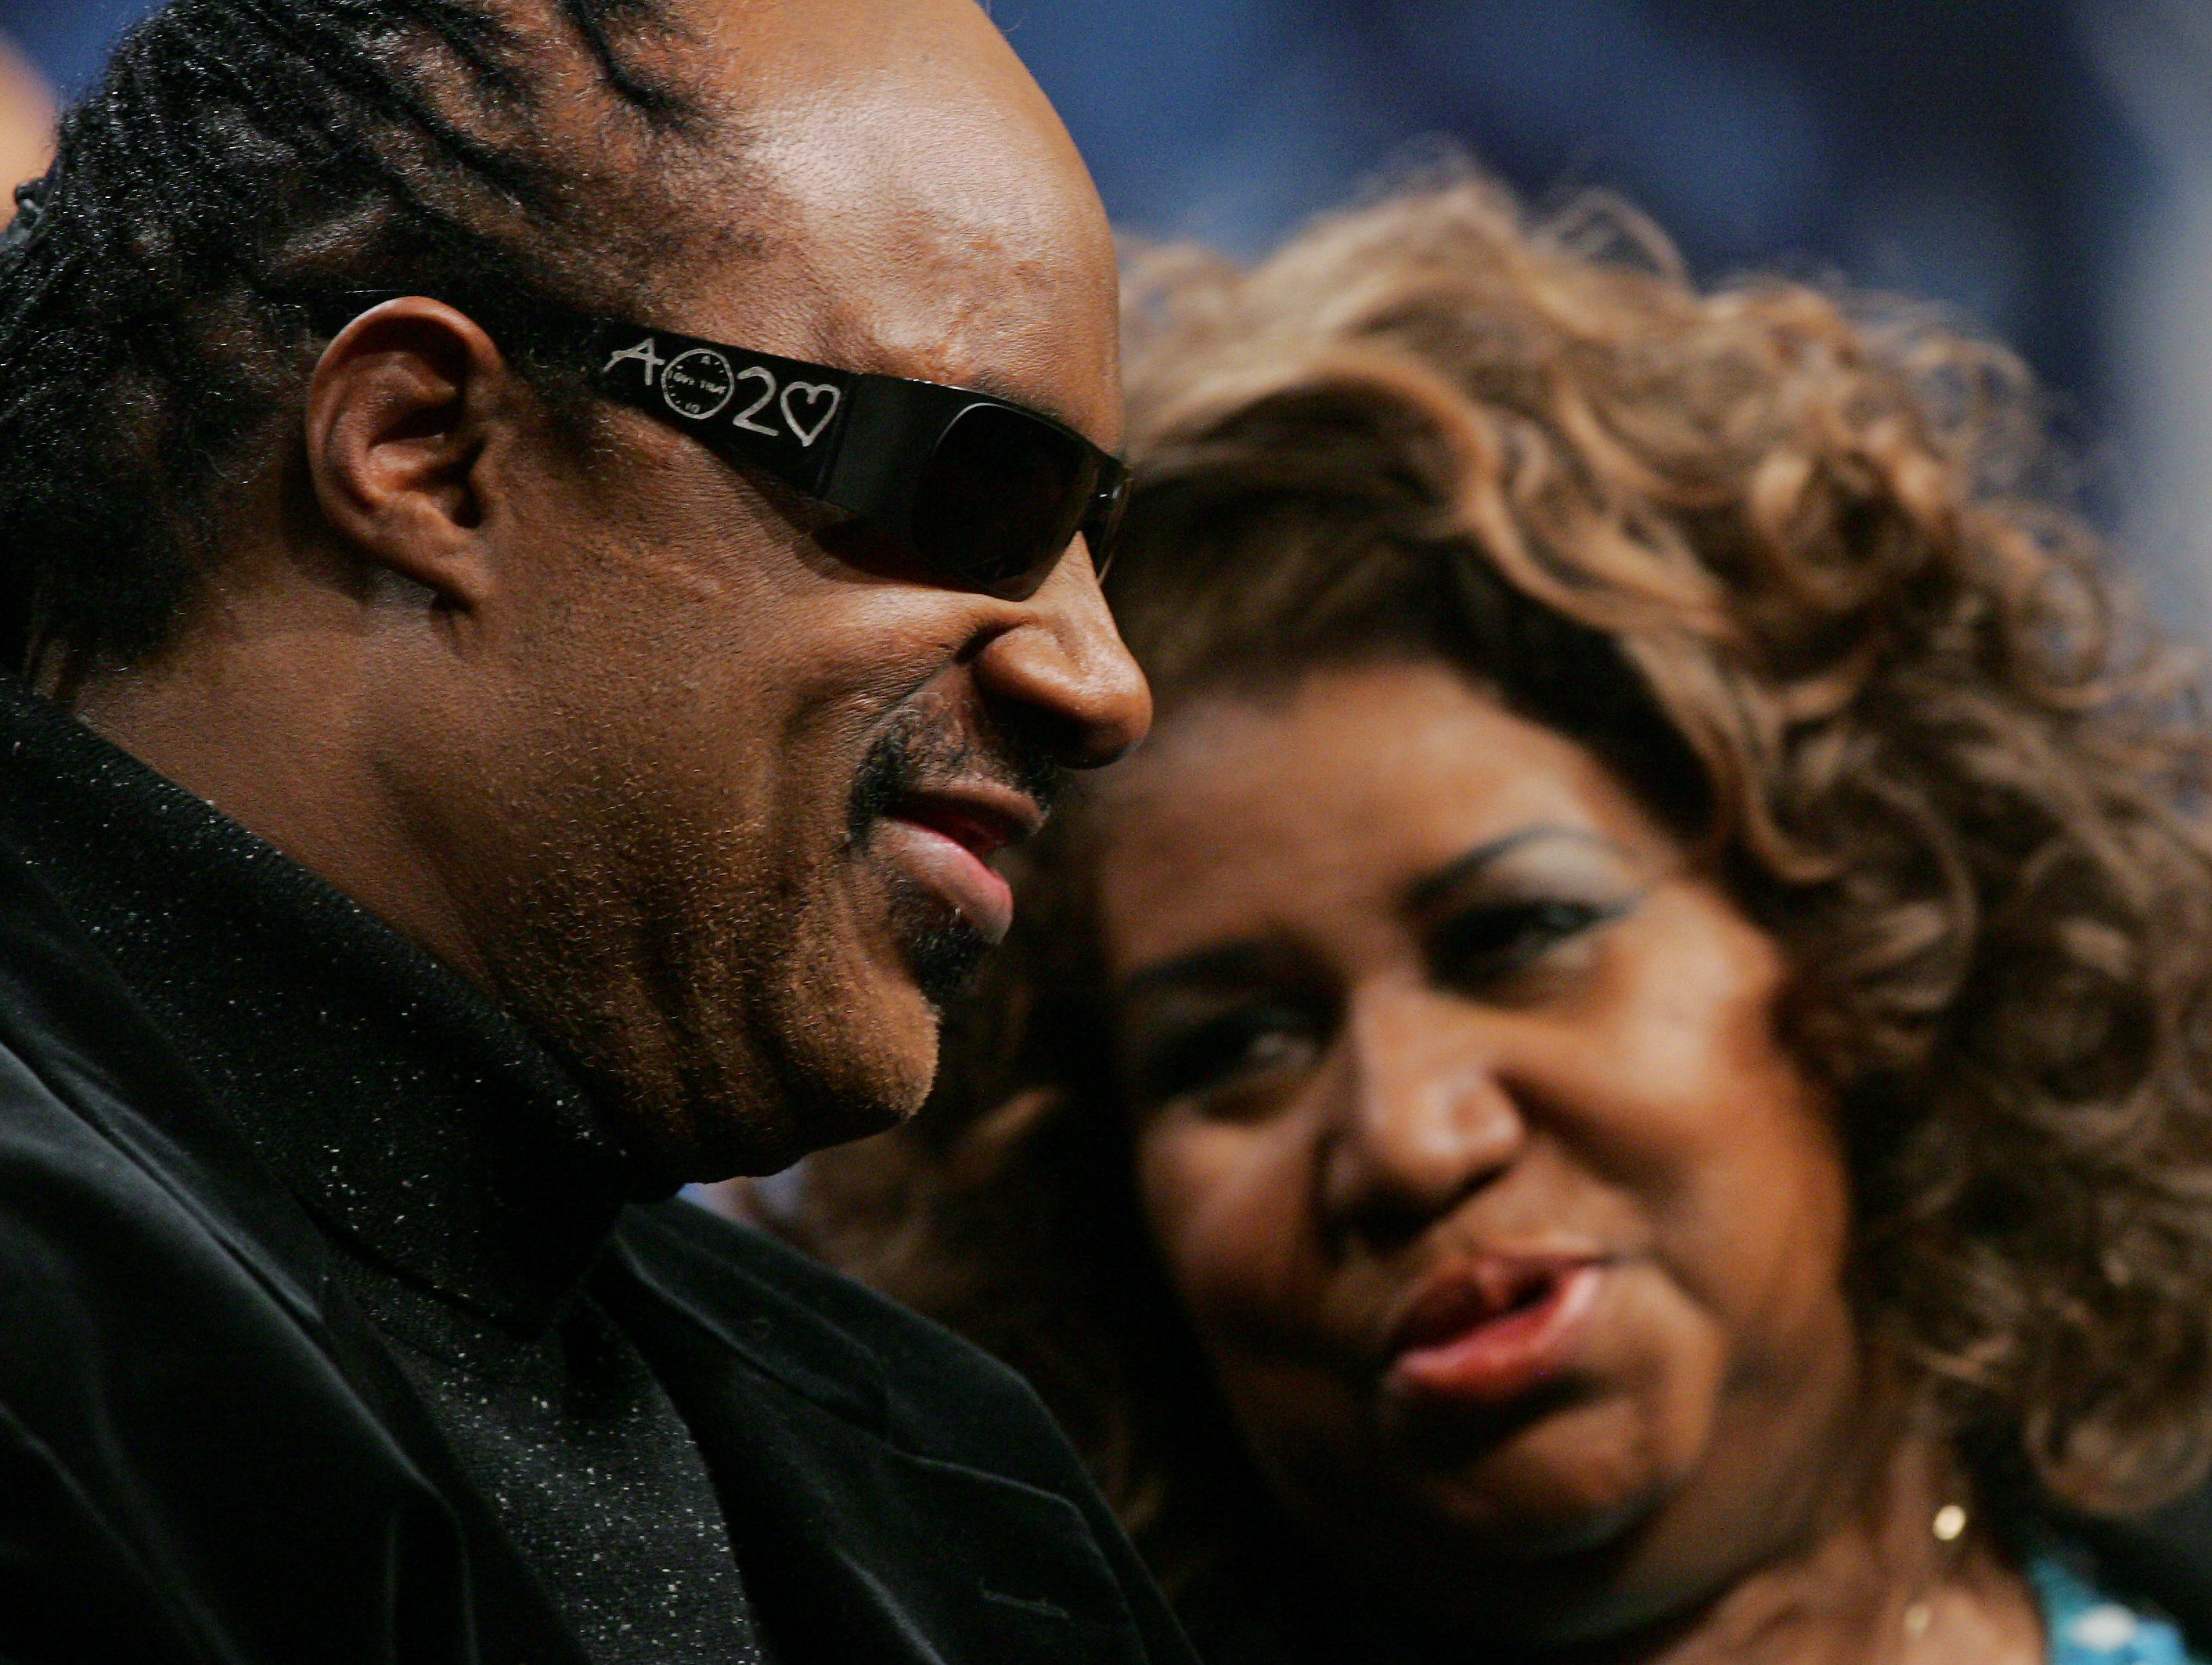 Singer Aretha Franklin, right, talks with Stevie Wonder during a news conference in Detroit Thursday, Feb. 2, 2006. Franklin was to perform the national athem prior to the game and Wonder provided pre-game entertainment. Super Bowl XL featured the AFC Champion Pittsburgh Steelers against the NFC Champion Seattle Seahawks.